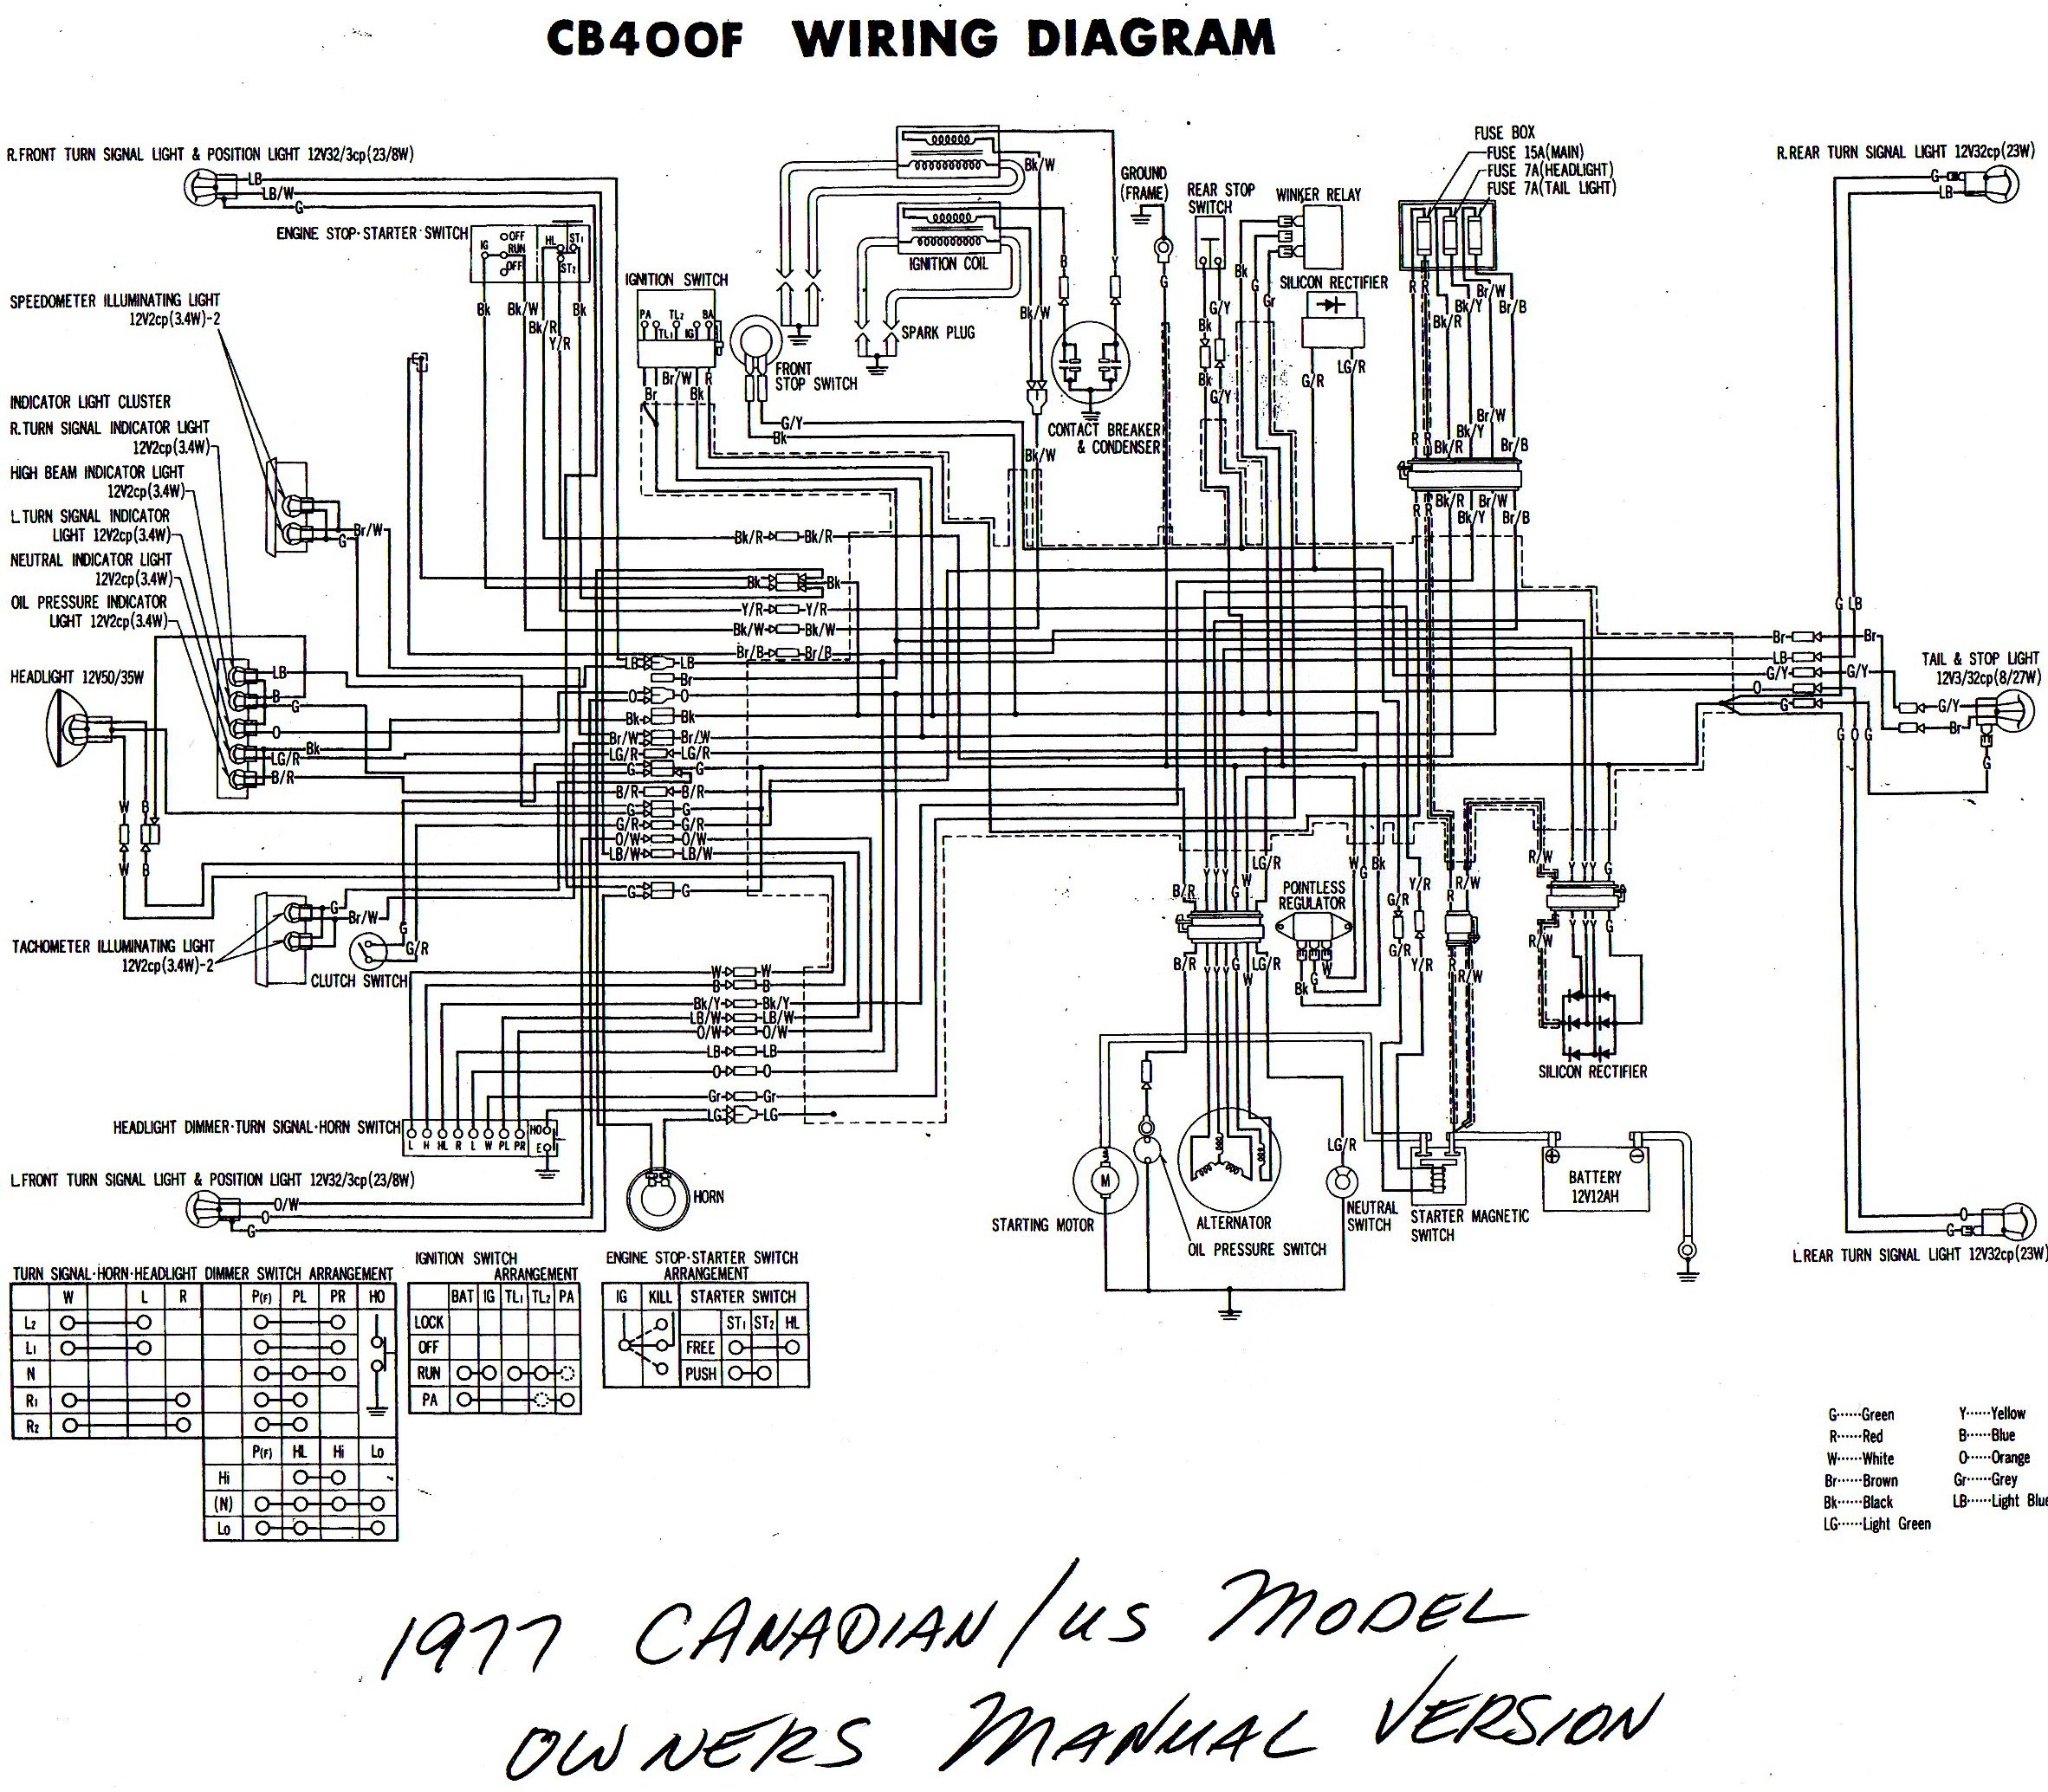 Electrical House Wiring Diagram 1975 - Find Wiring Diagram •